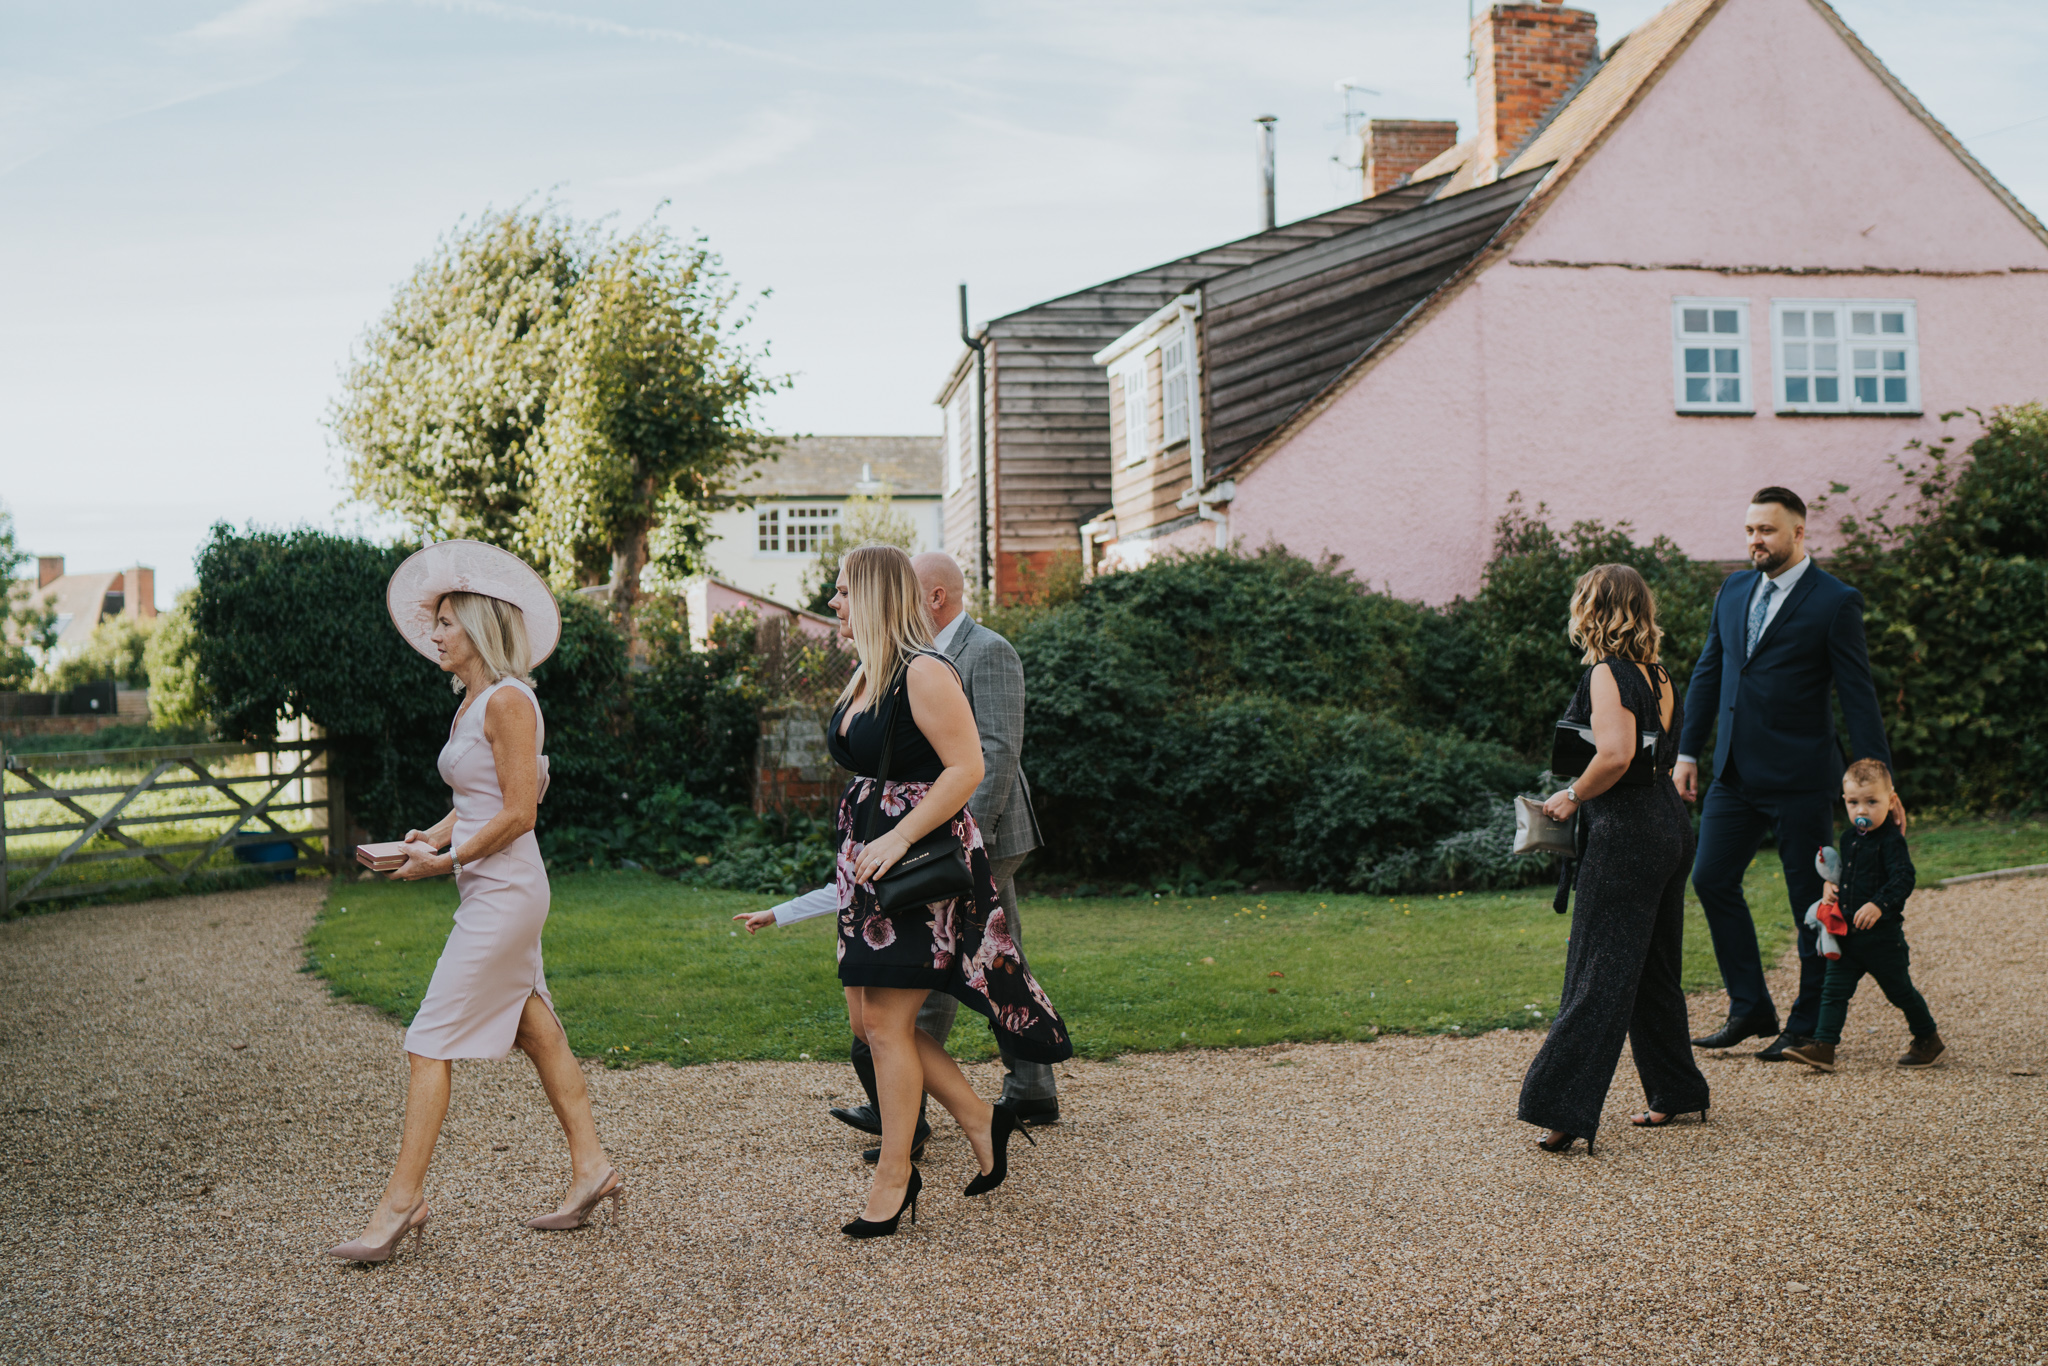 intimate-english-church-wedding-sarah-alex-colchester-essex-grace-elizabeth-colchester-essex-alternative-wedding-lifestyle-photographer-essex-suffolk-norfolk-devon (24 of 92).jpg